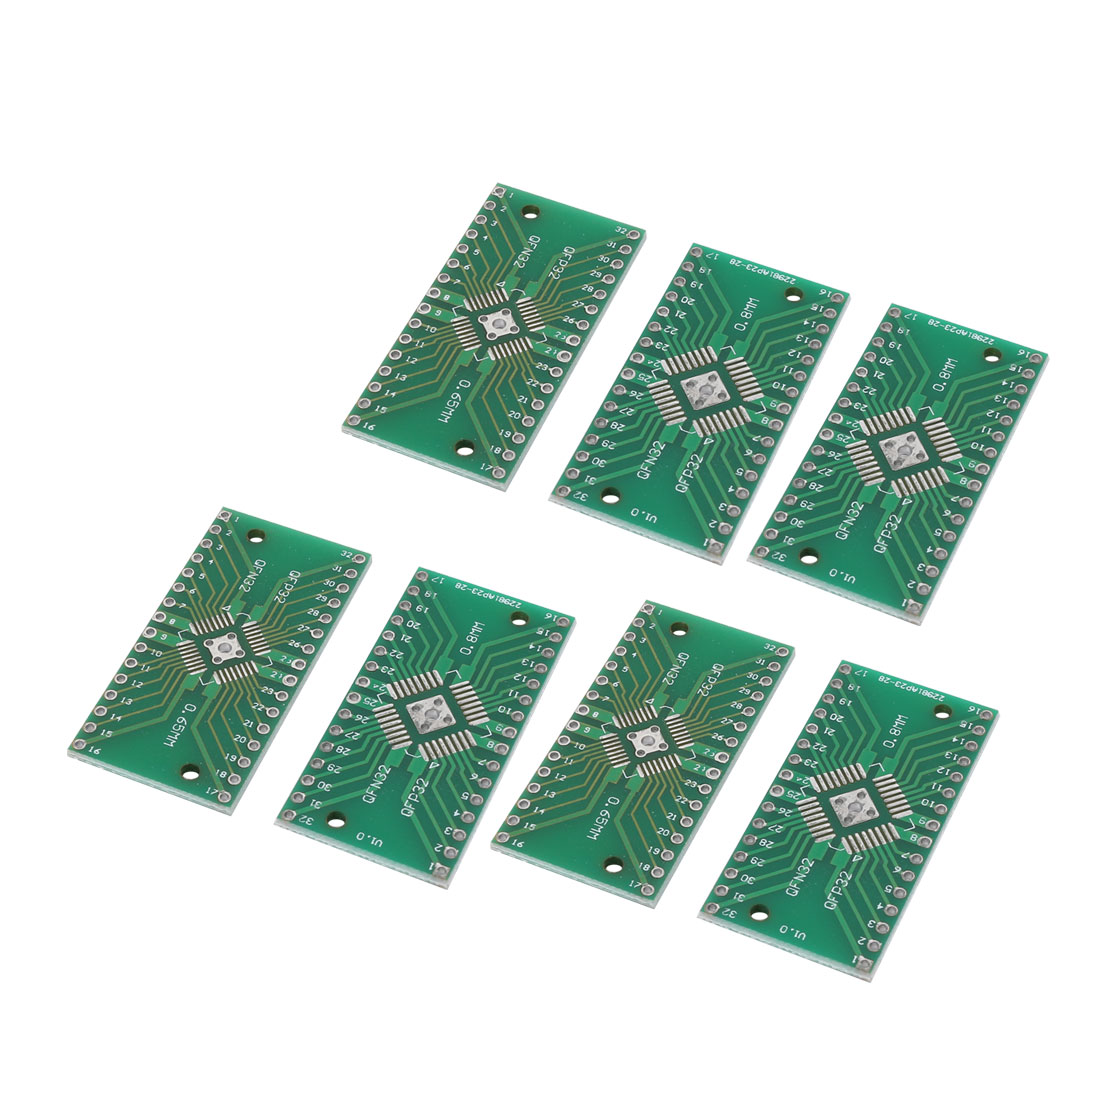 7 Pcs 0.8mm/0.65mm Pitch Prototyping Double Side PCB Board Stripboard 40mmx20mm